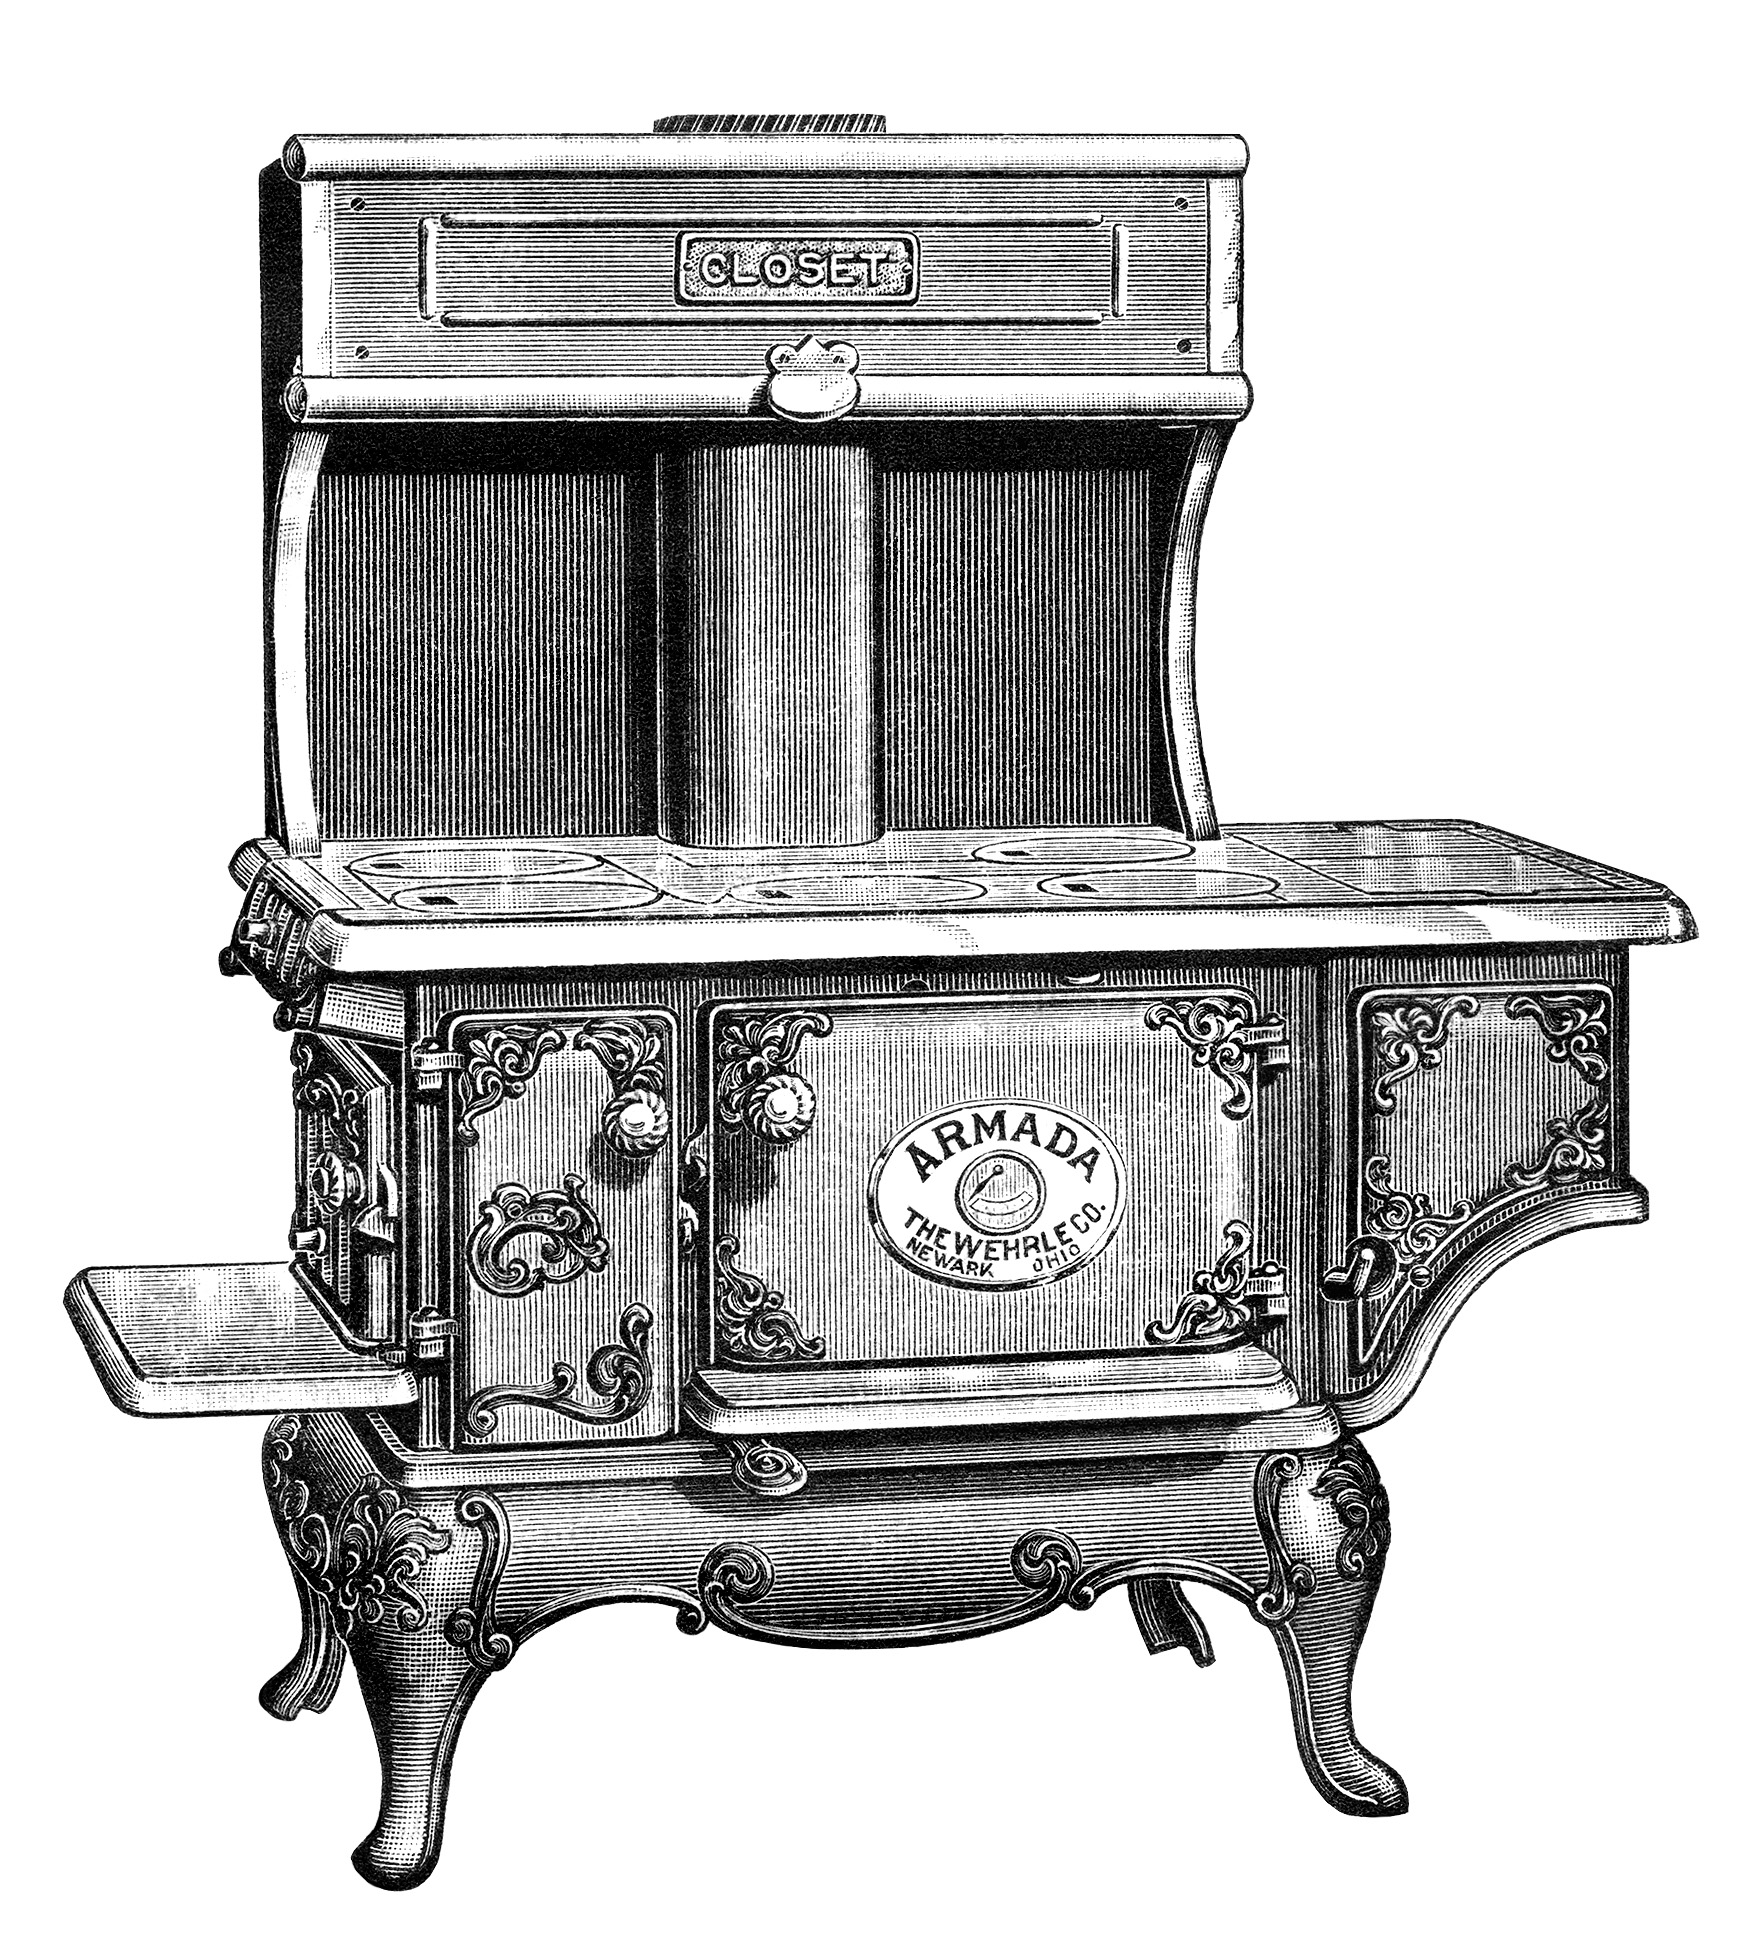 antique stove clip art, black and white clipart, vintage kitchen graphic, old fashioned cooking illustration, armada stove picture